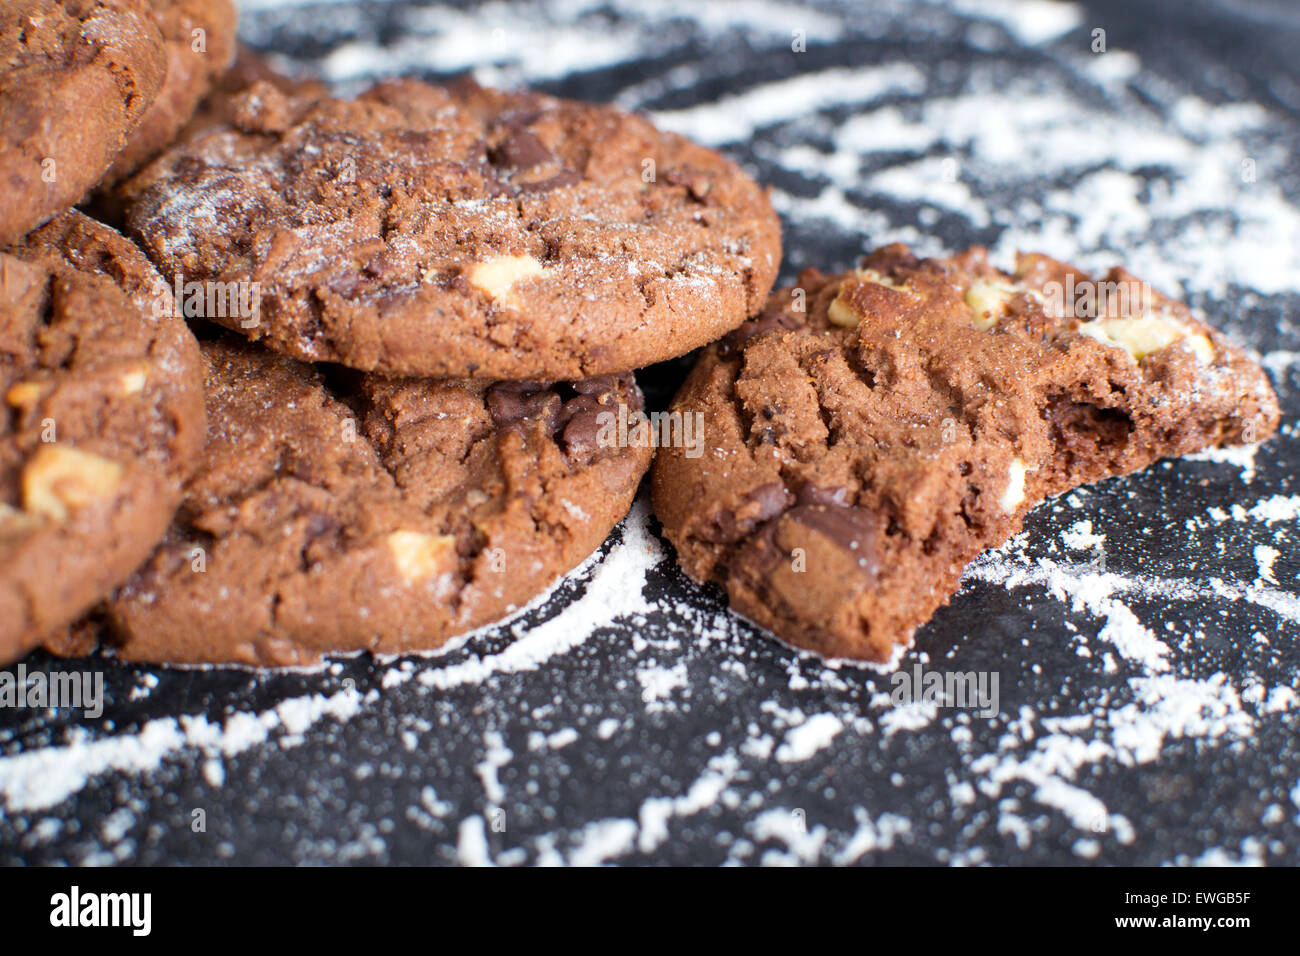 Chocolate cookies and flour - Stock Image